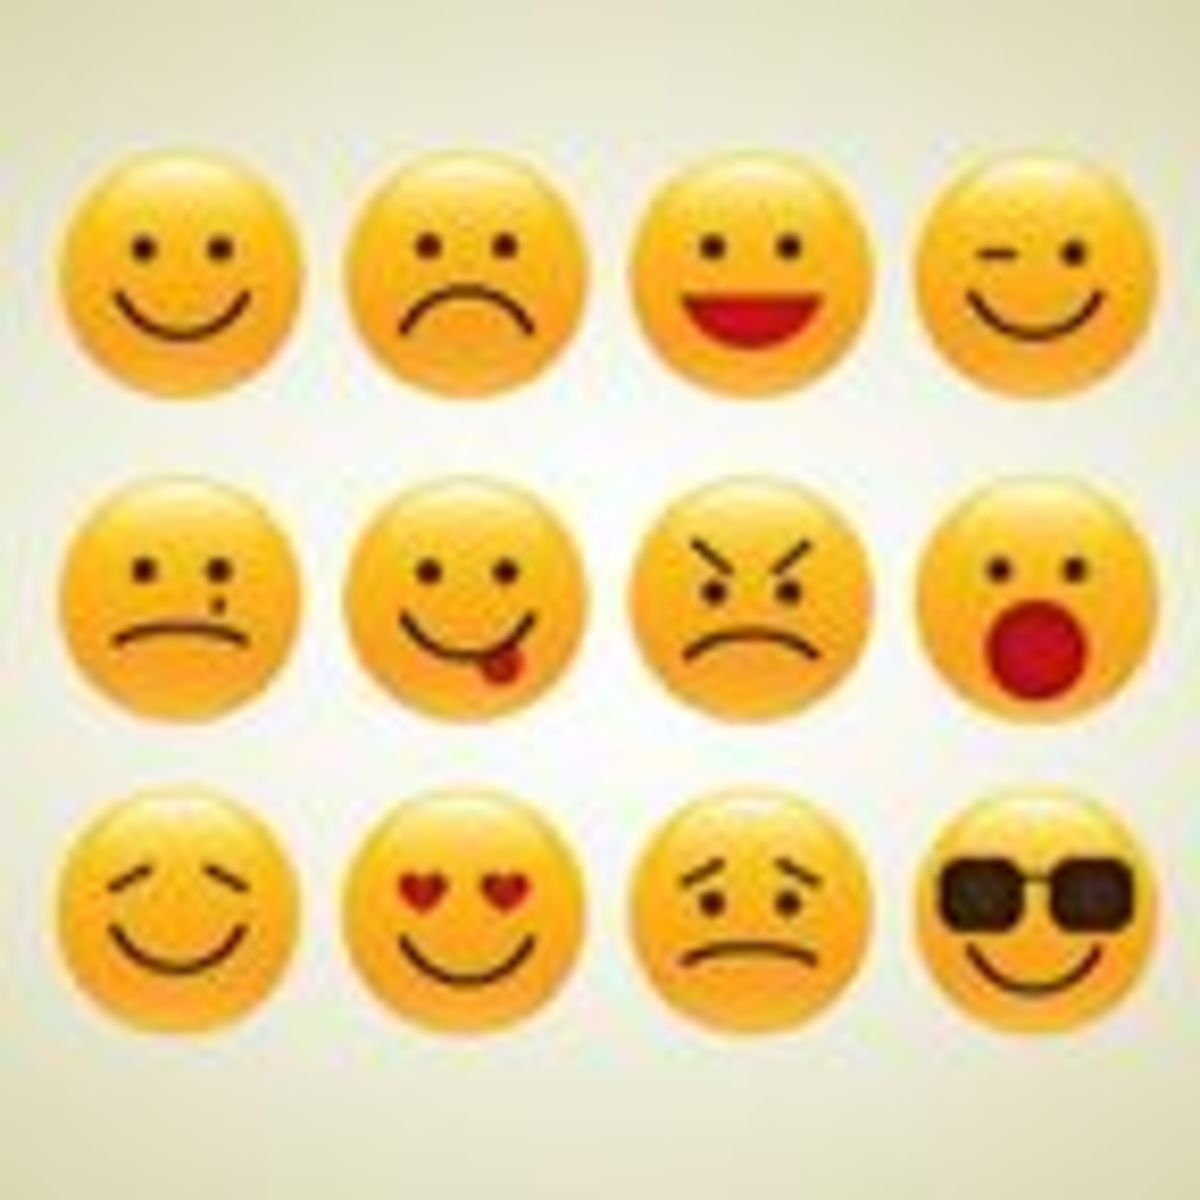 Understanding Emotions and How to Process Them | Psychology